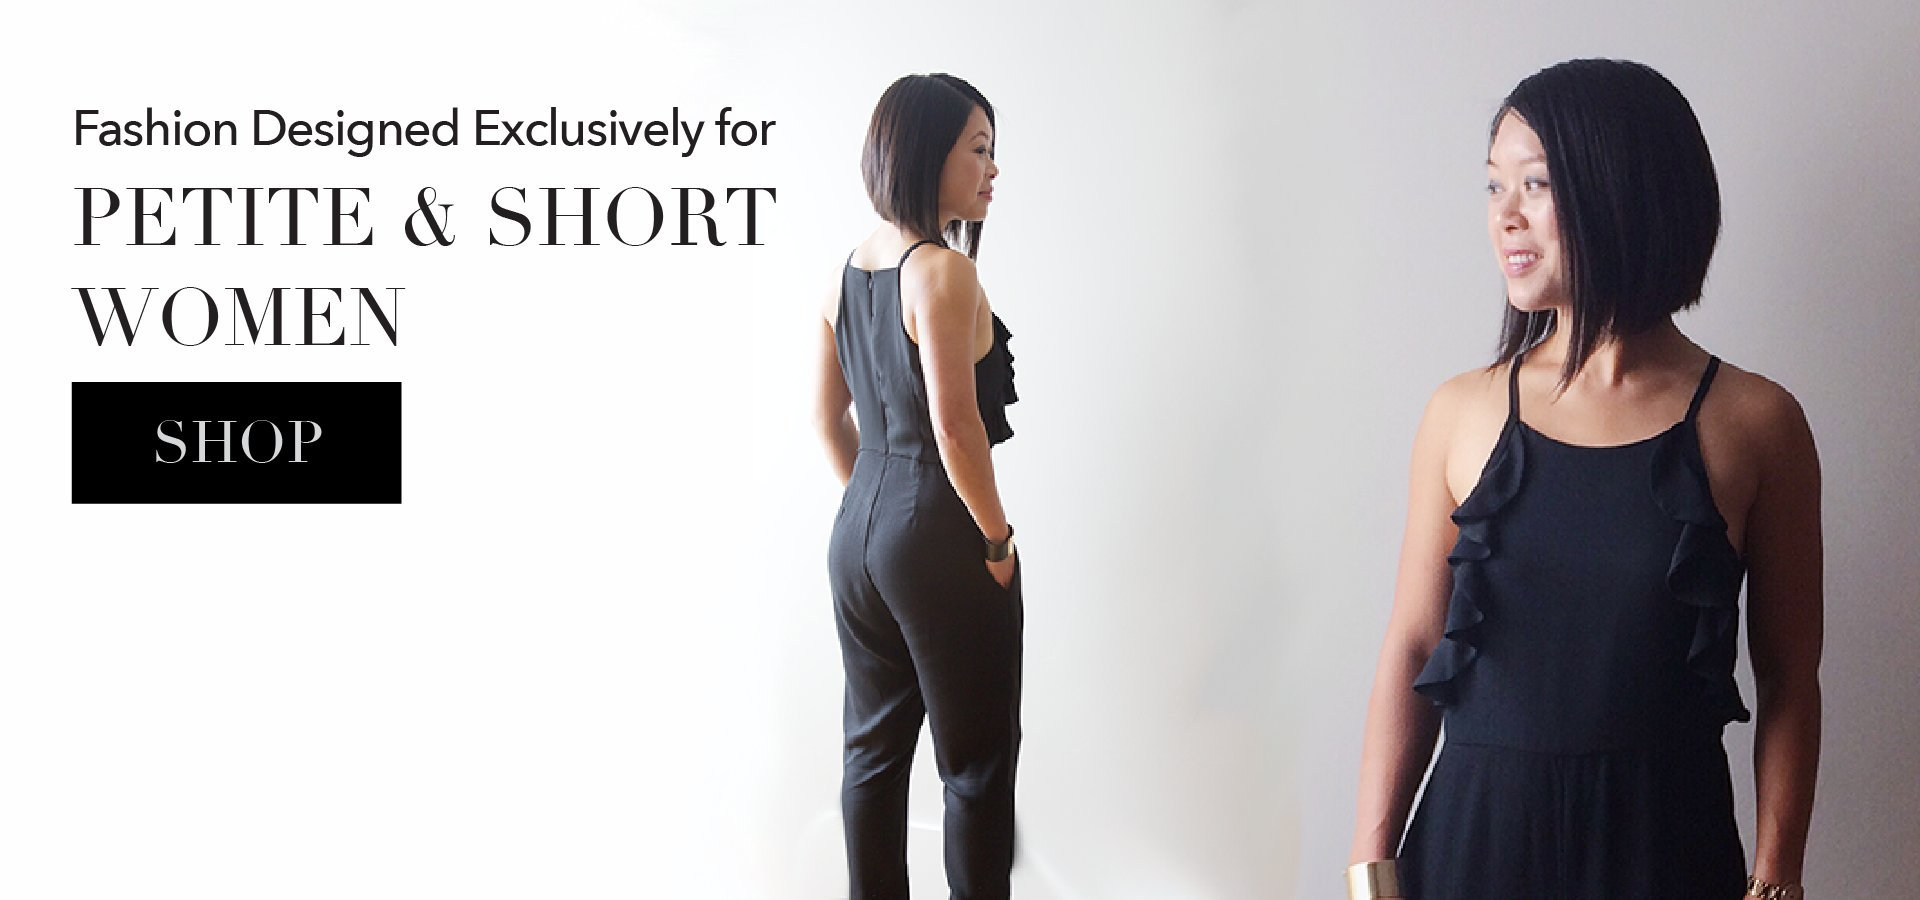 Madeline Jumpsuit with Short Inseams for Petite Women - Black by MADEIRA BRAND at madeirabrand.com